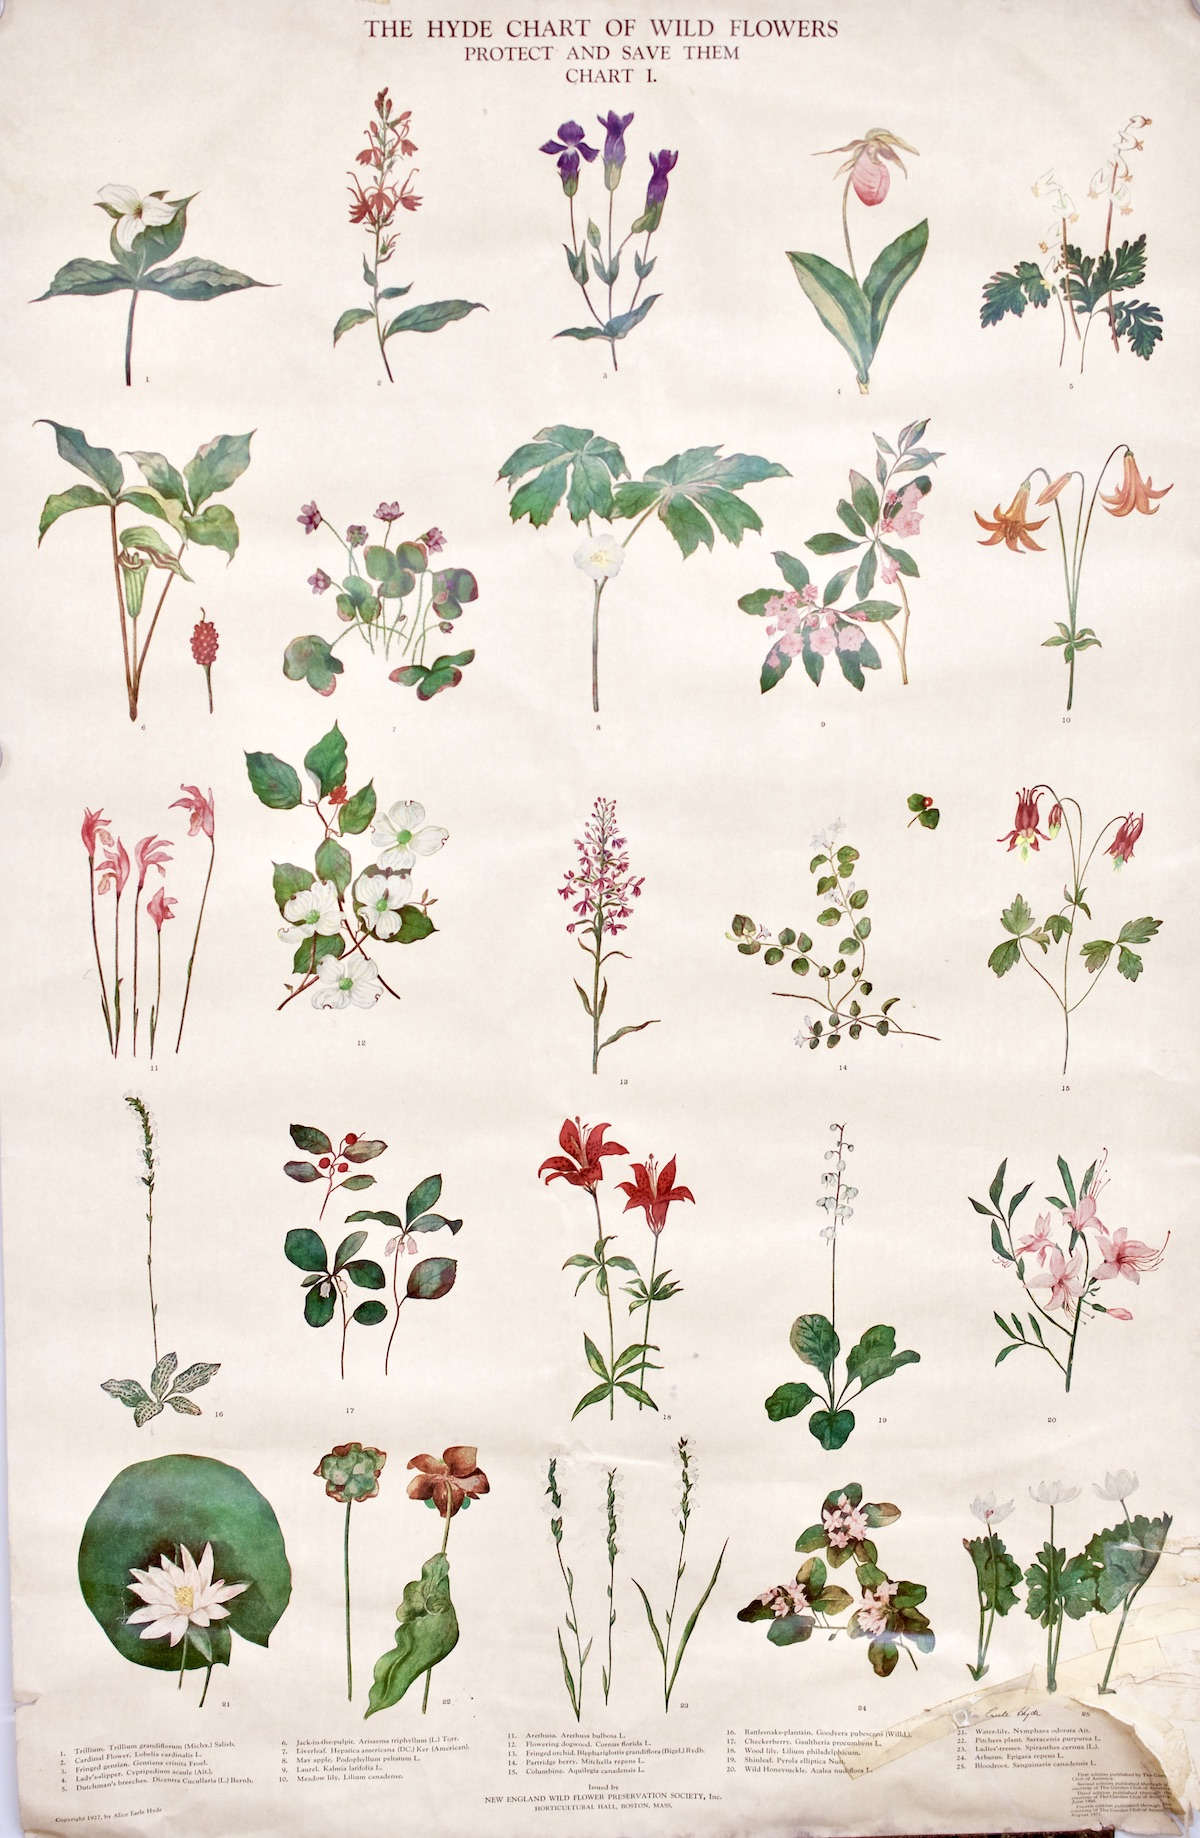 Hyde Chart of Wild Flowers